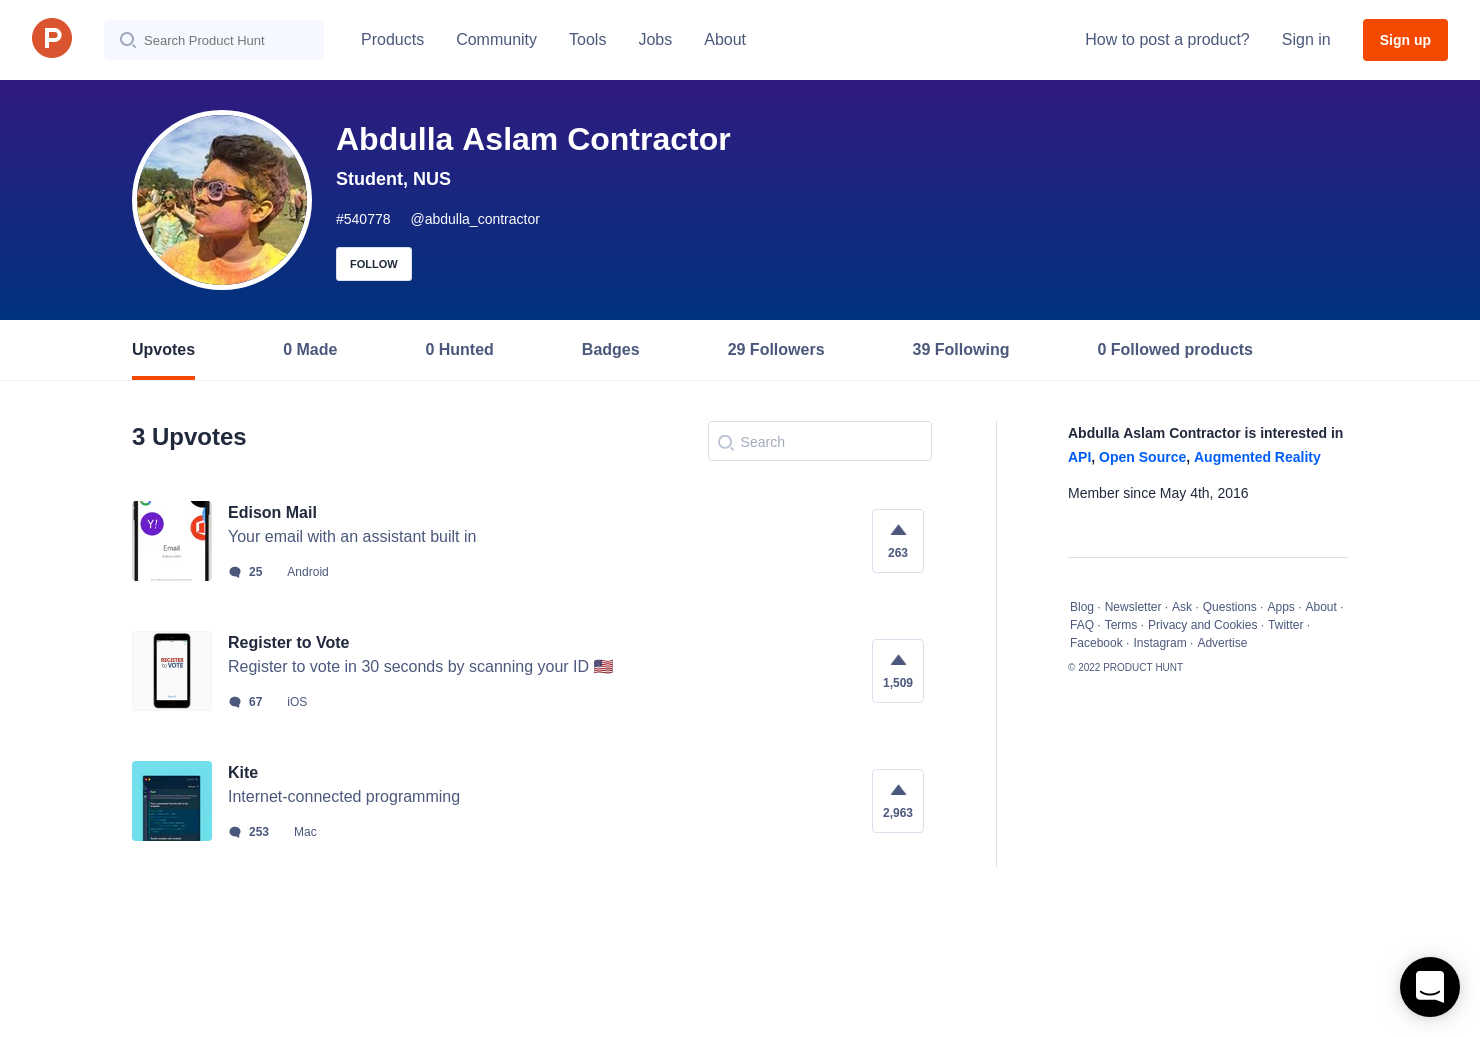 abdulla aslam contractor s profile on product hunt